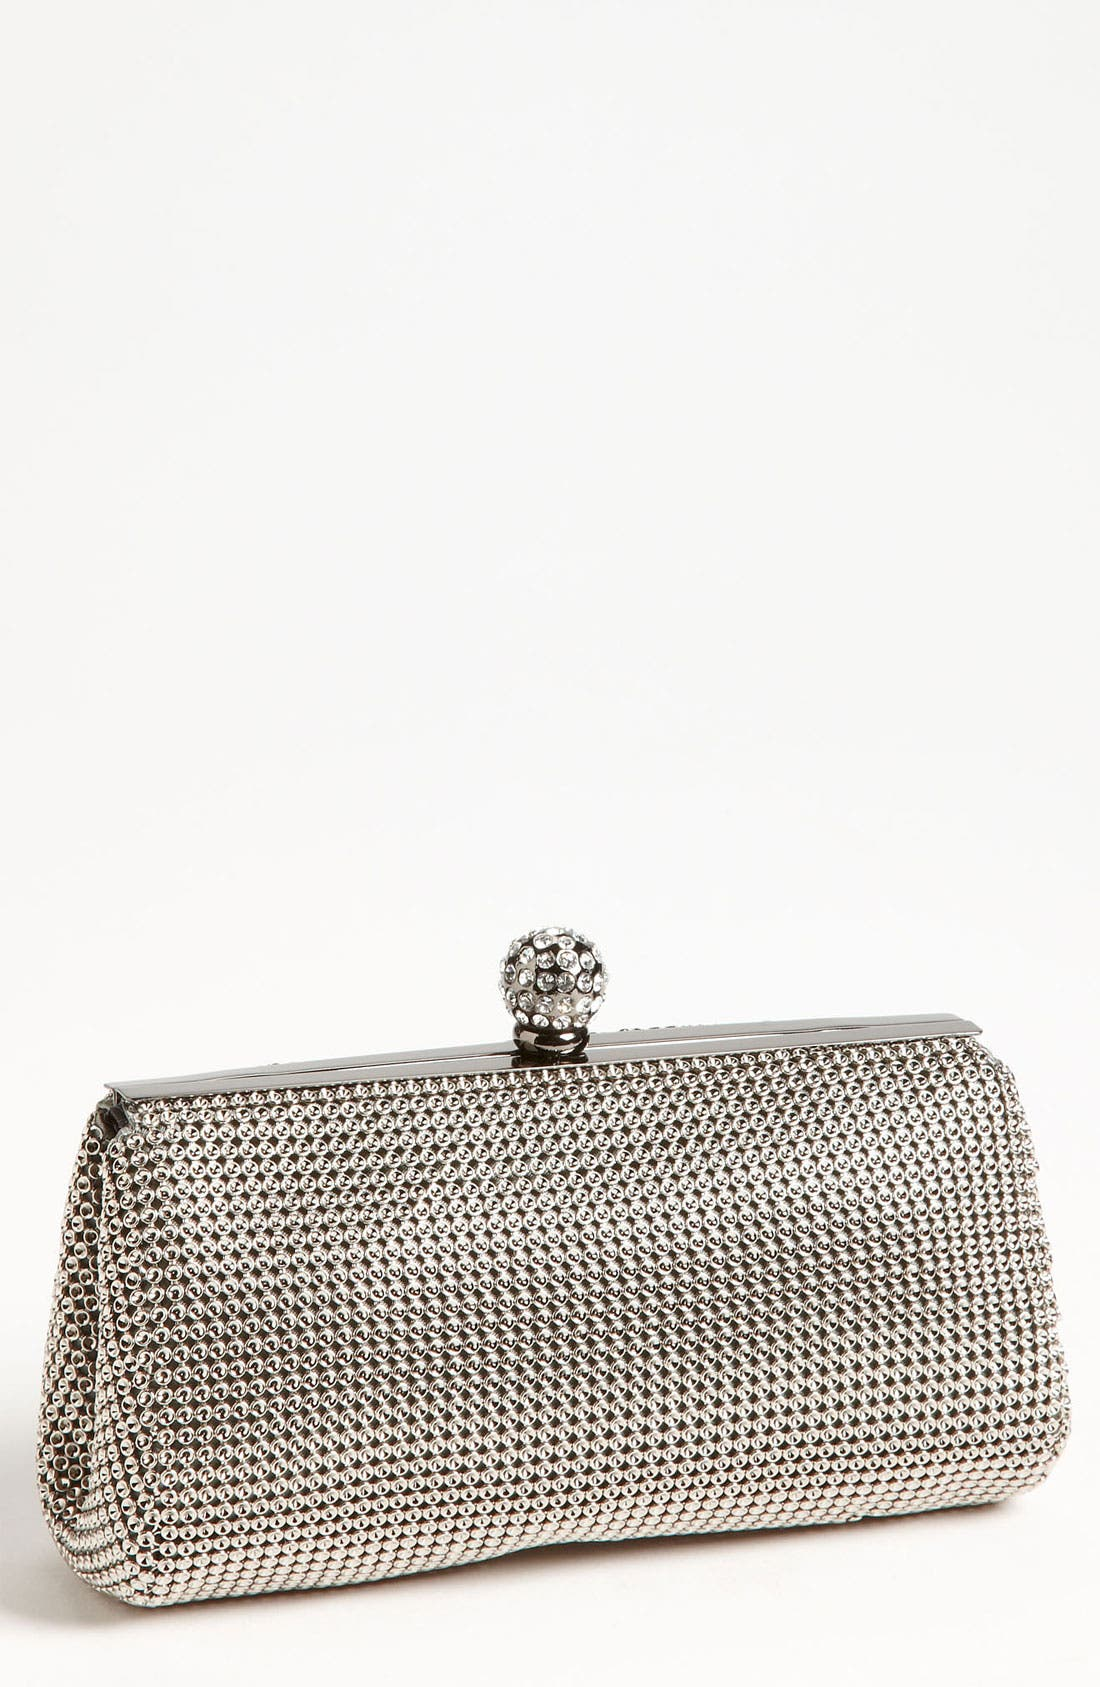 Main Image - Whiting & Davis 'Crystal' Mesh Clutch